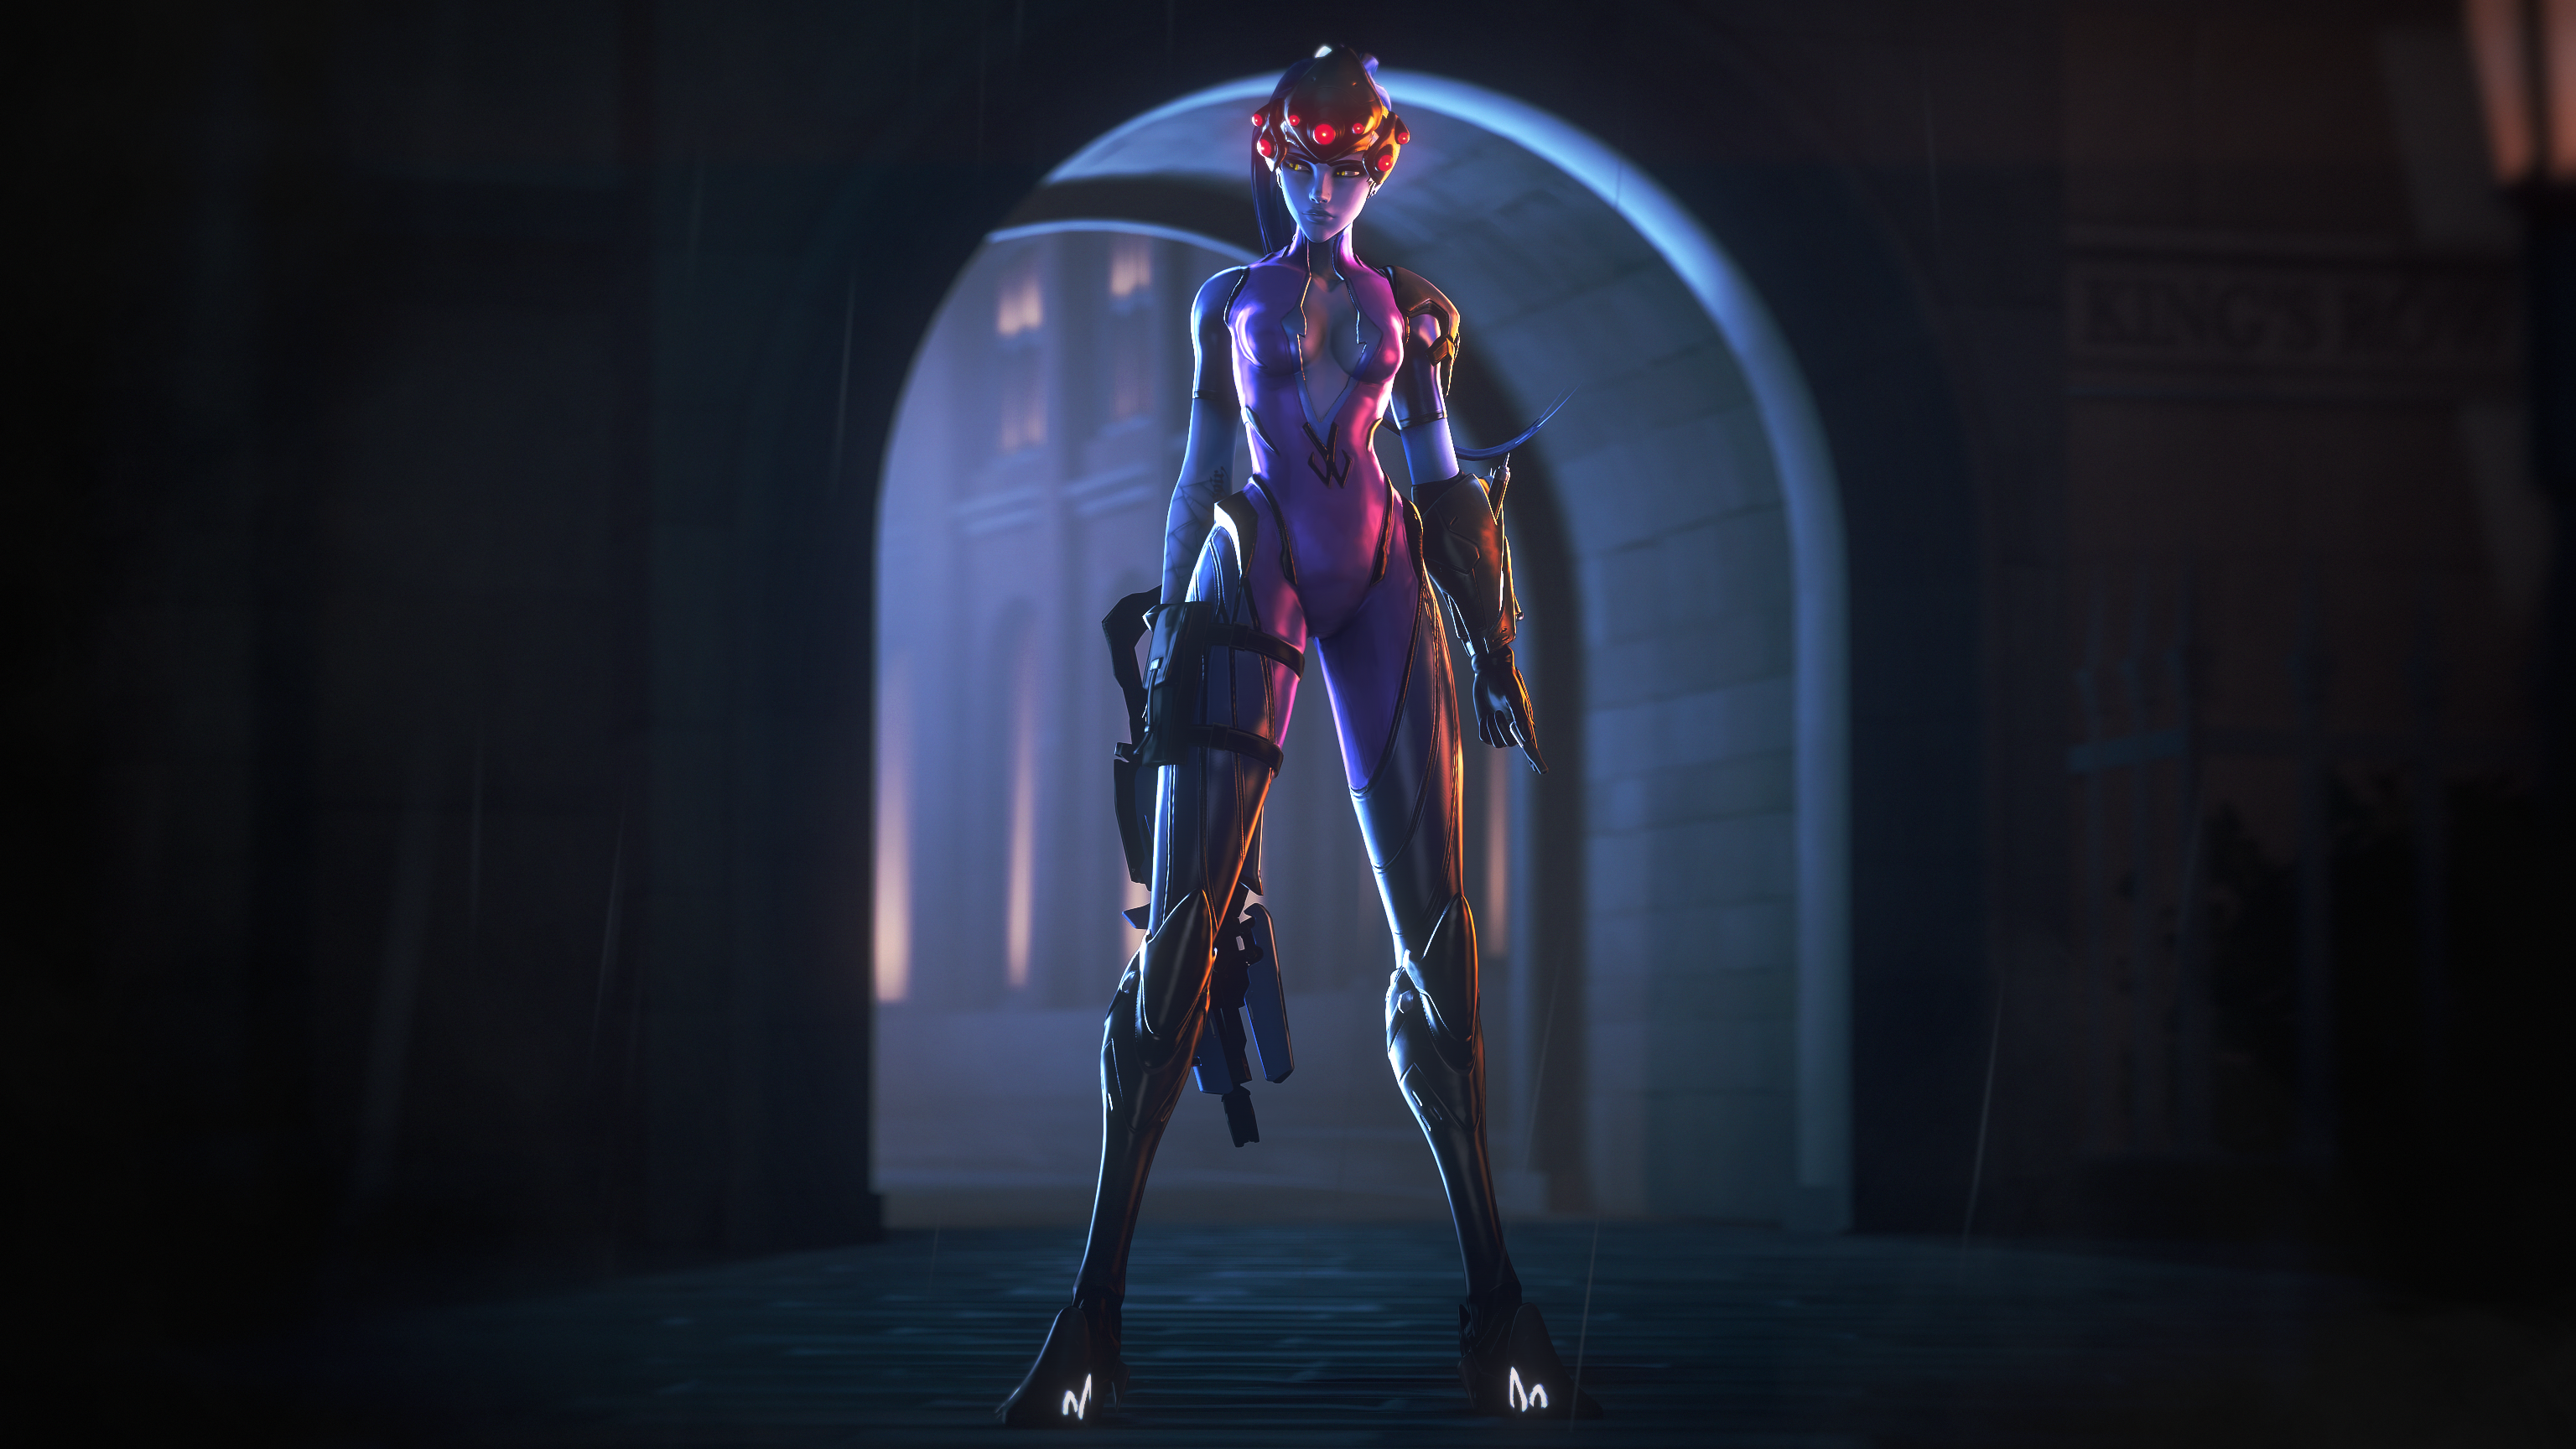 Overwatch full hd wallpaper and background 1920x1280 - Hd Wallpaper Background Id 751170 3072x1728 Video Game Overwatch